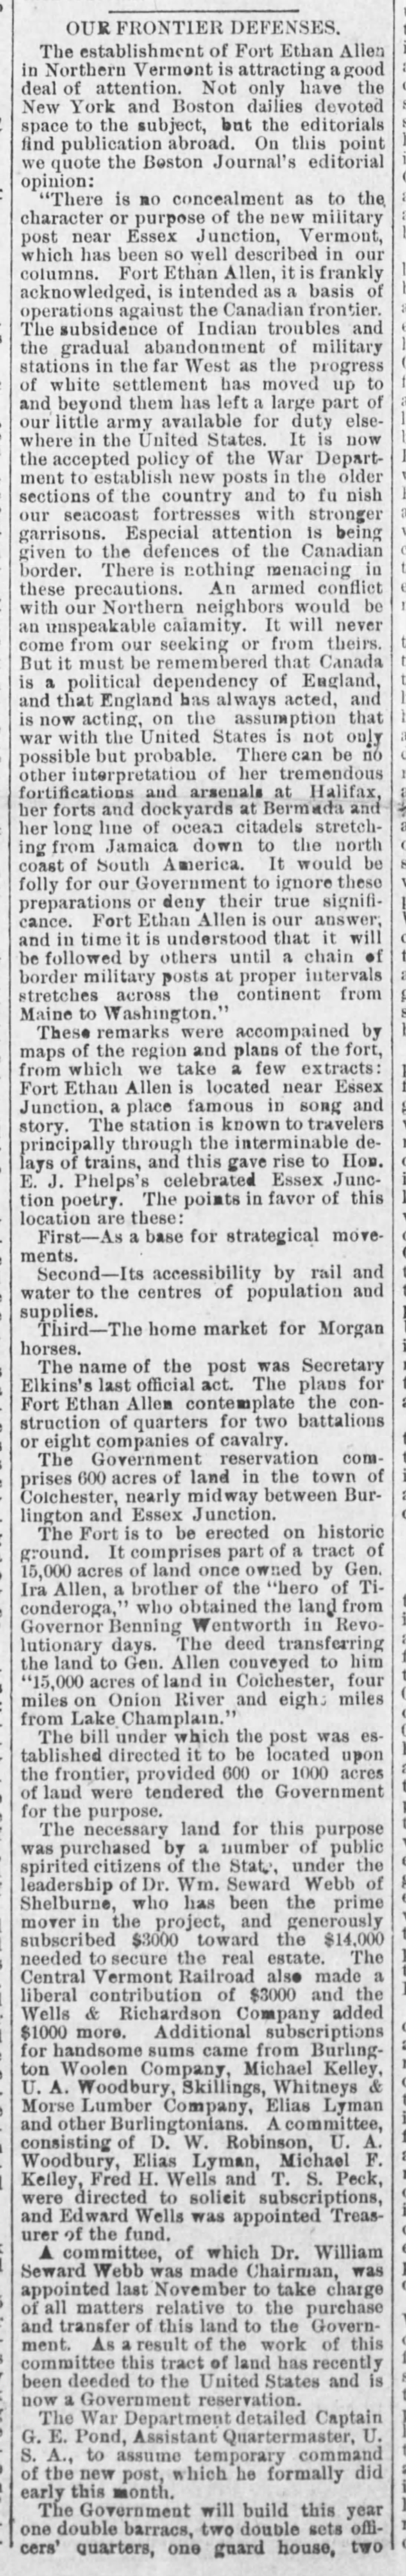 Article in the Bennington (VT) Banner dated March 24, 1893 that speculates to the reasons behind the commissioning of Fort Ethan Allen.